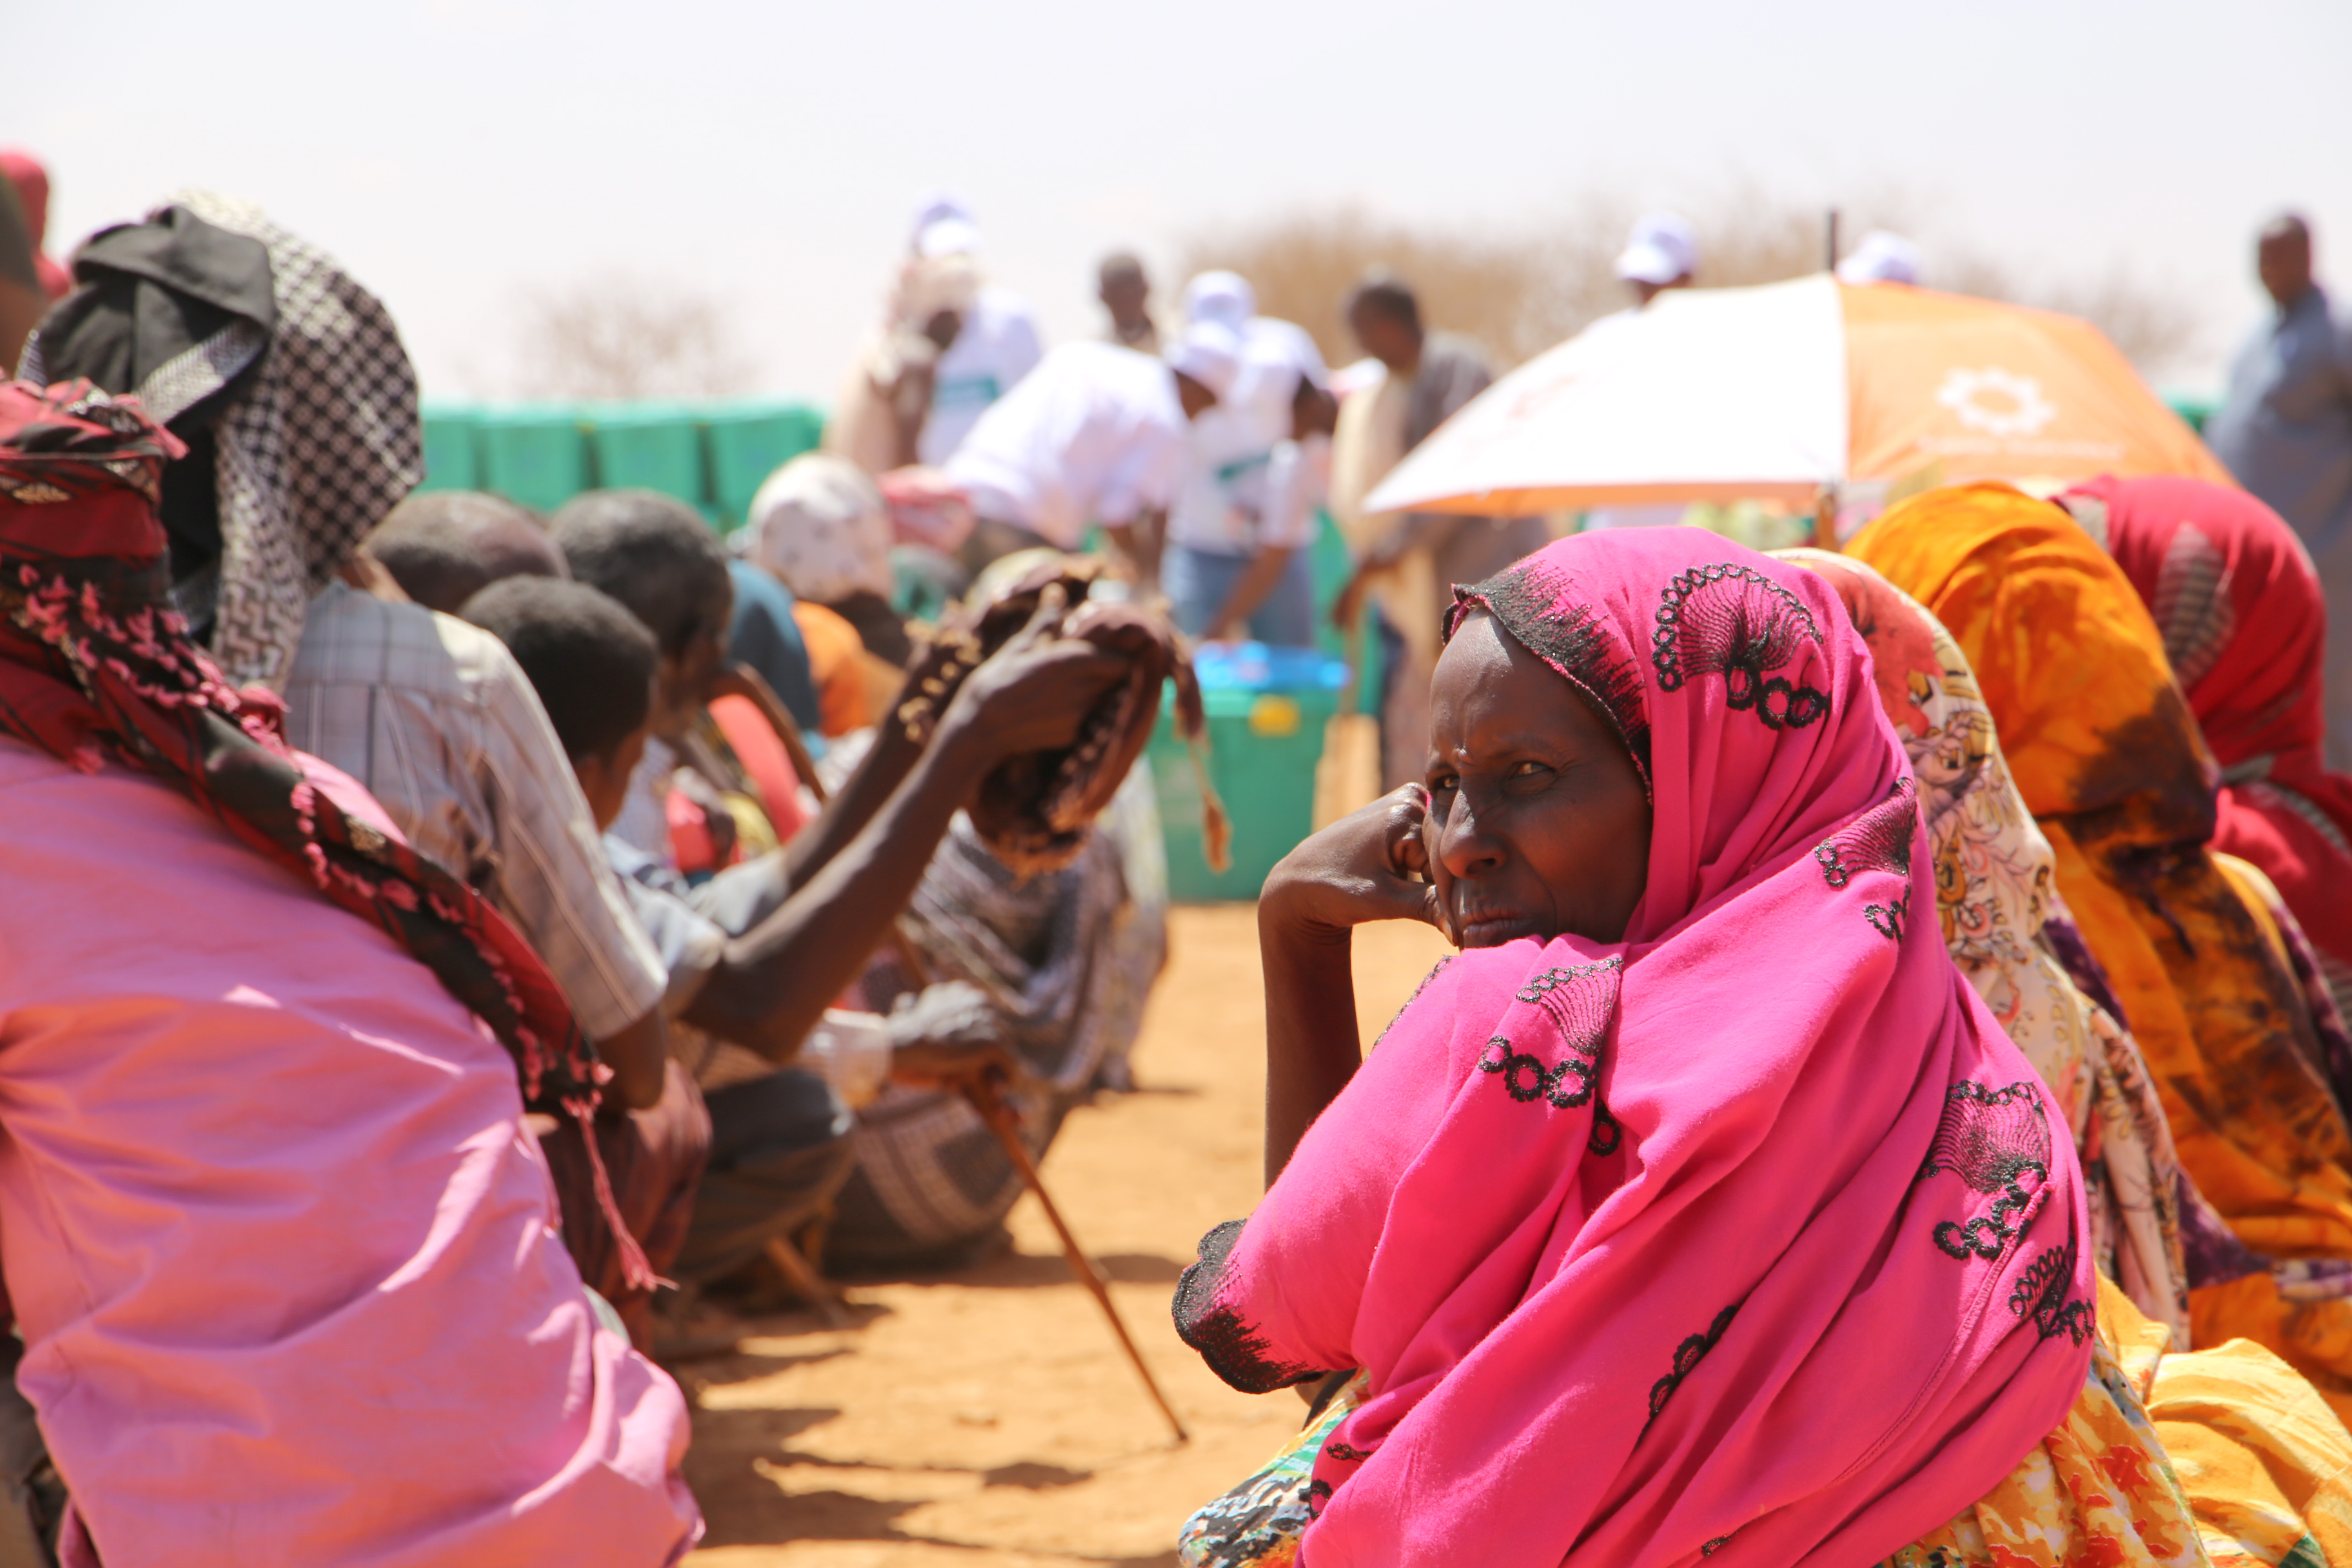 Somaliland Drought 2018 - aid distribution